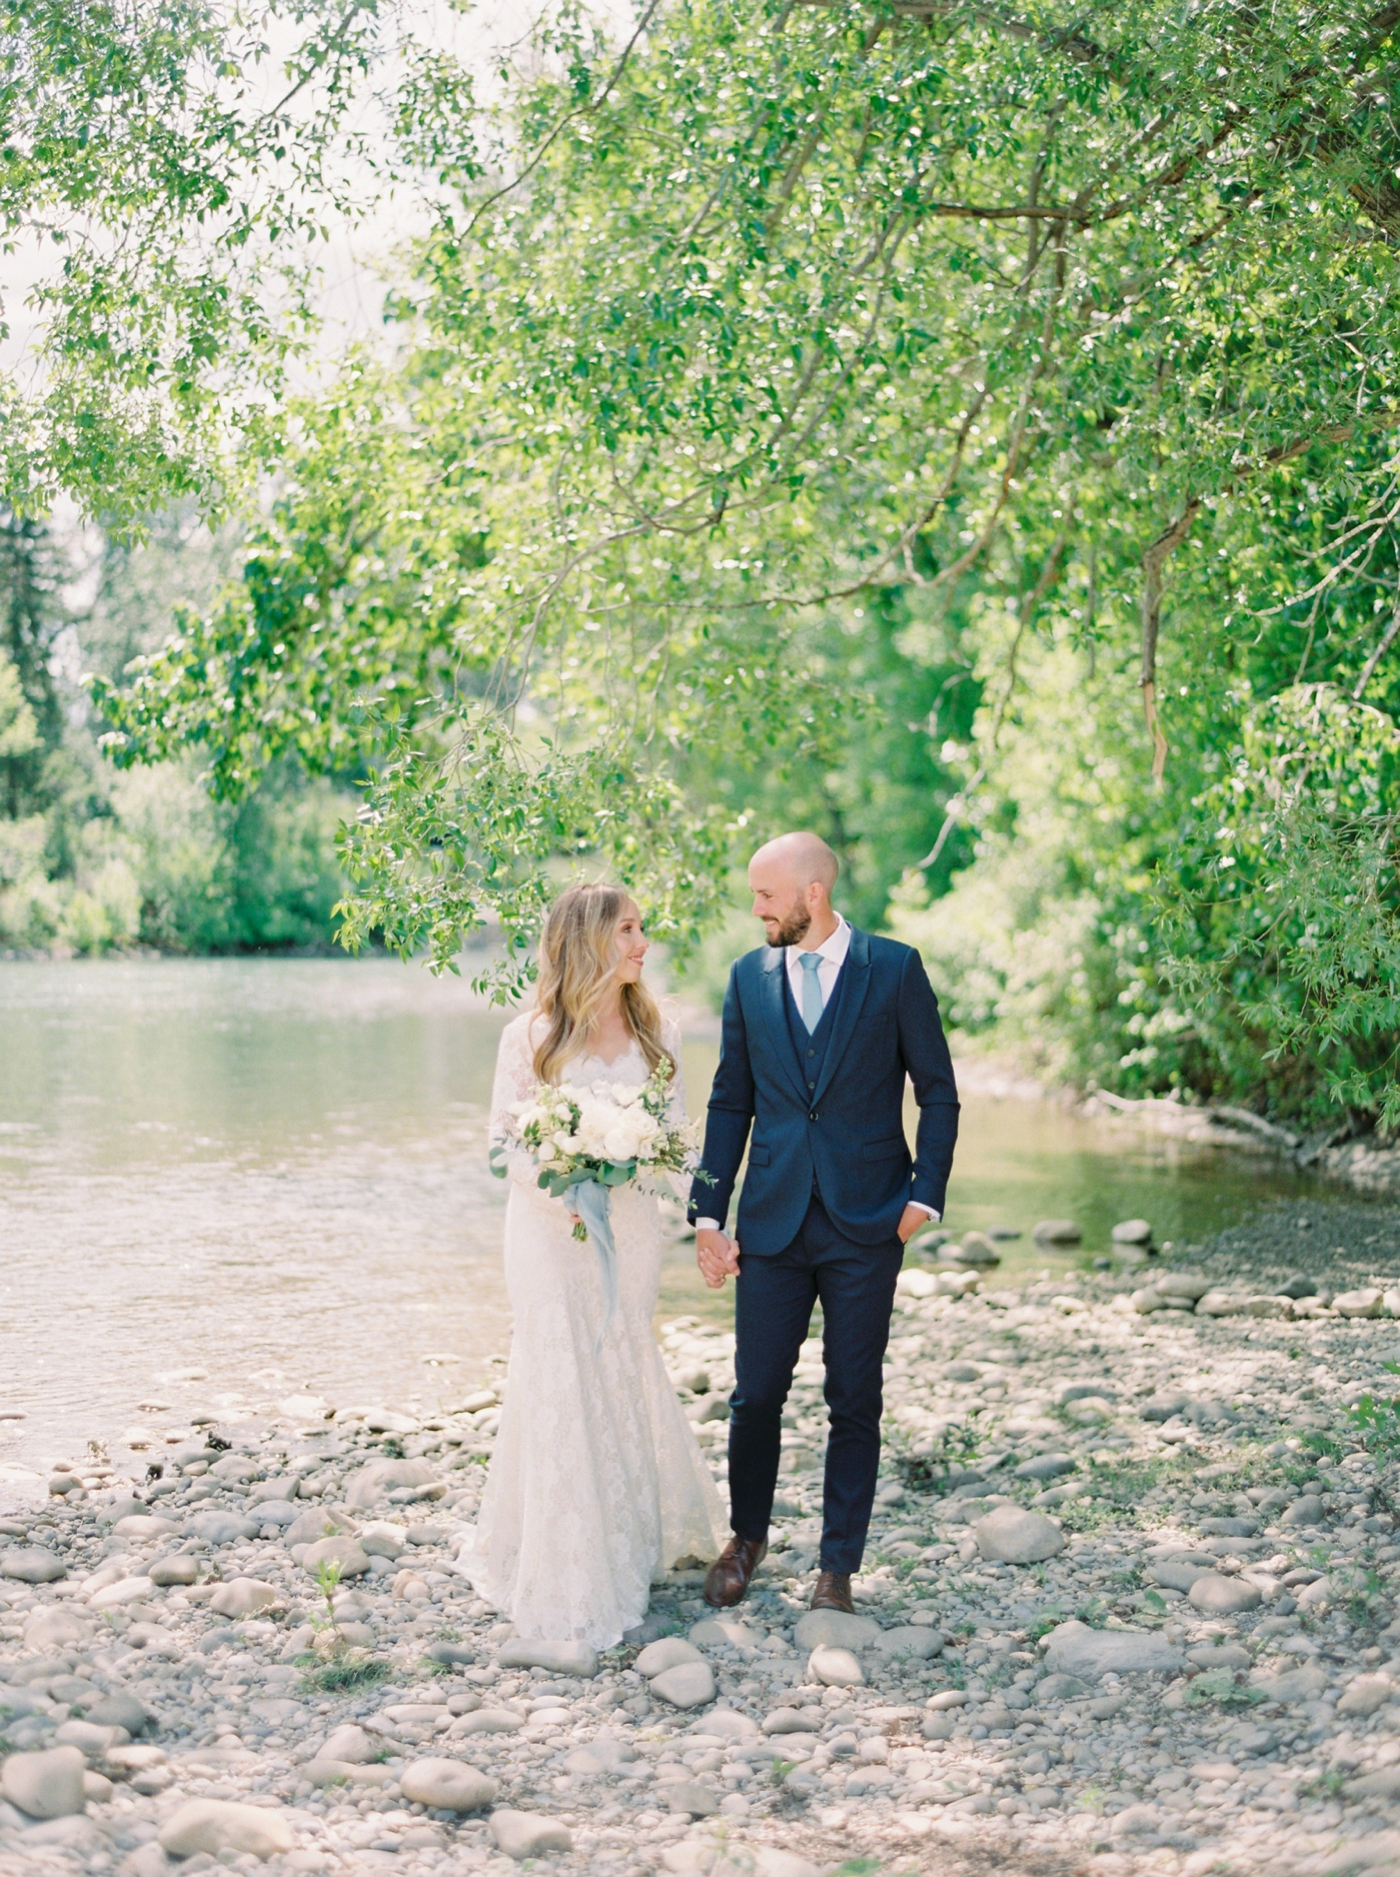 Calgary wedding photographers | The Gathered Farm Wedding | Justine milton fine art film photographer | bride and groom portraits